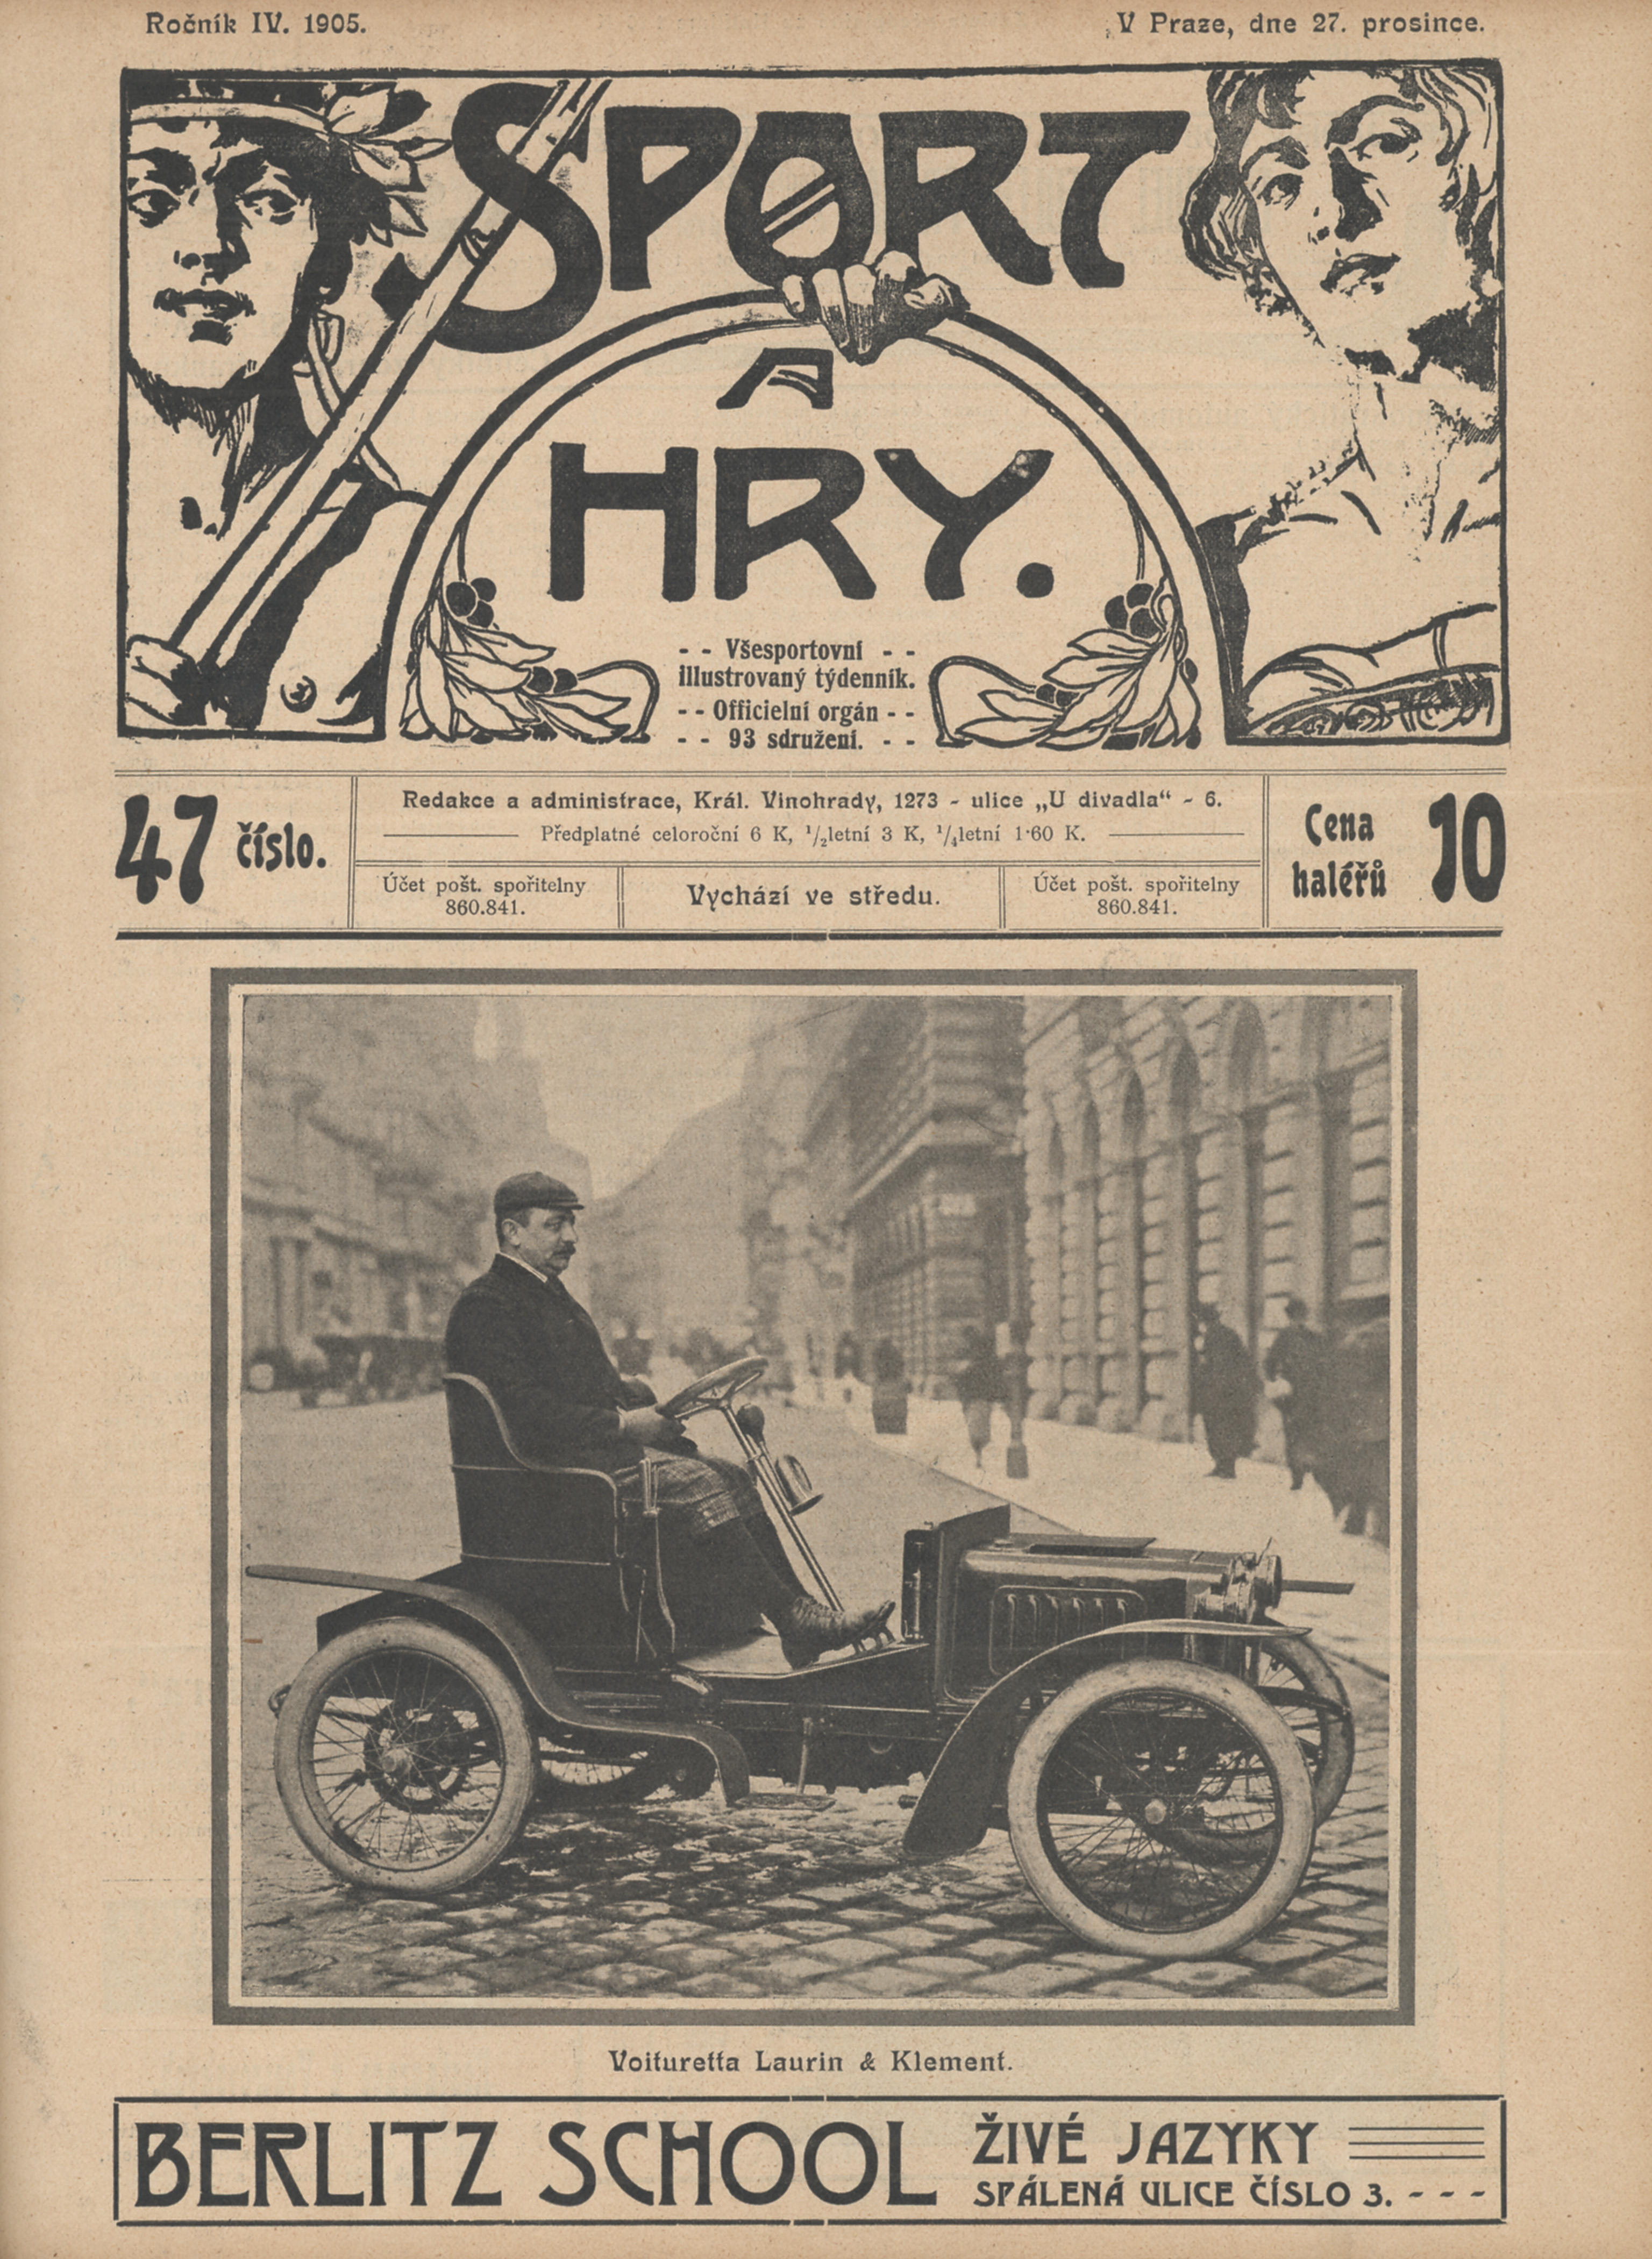 115 years of automotive engineering in Mladá Boleslav: In December 1905 Laurin & Klement presented the Voiturette A - Image 4